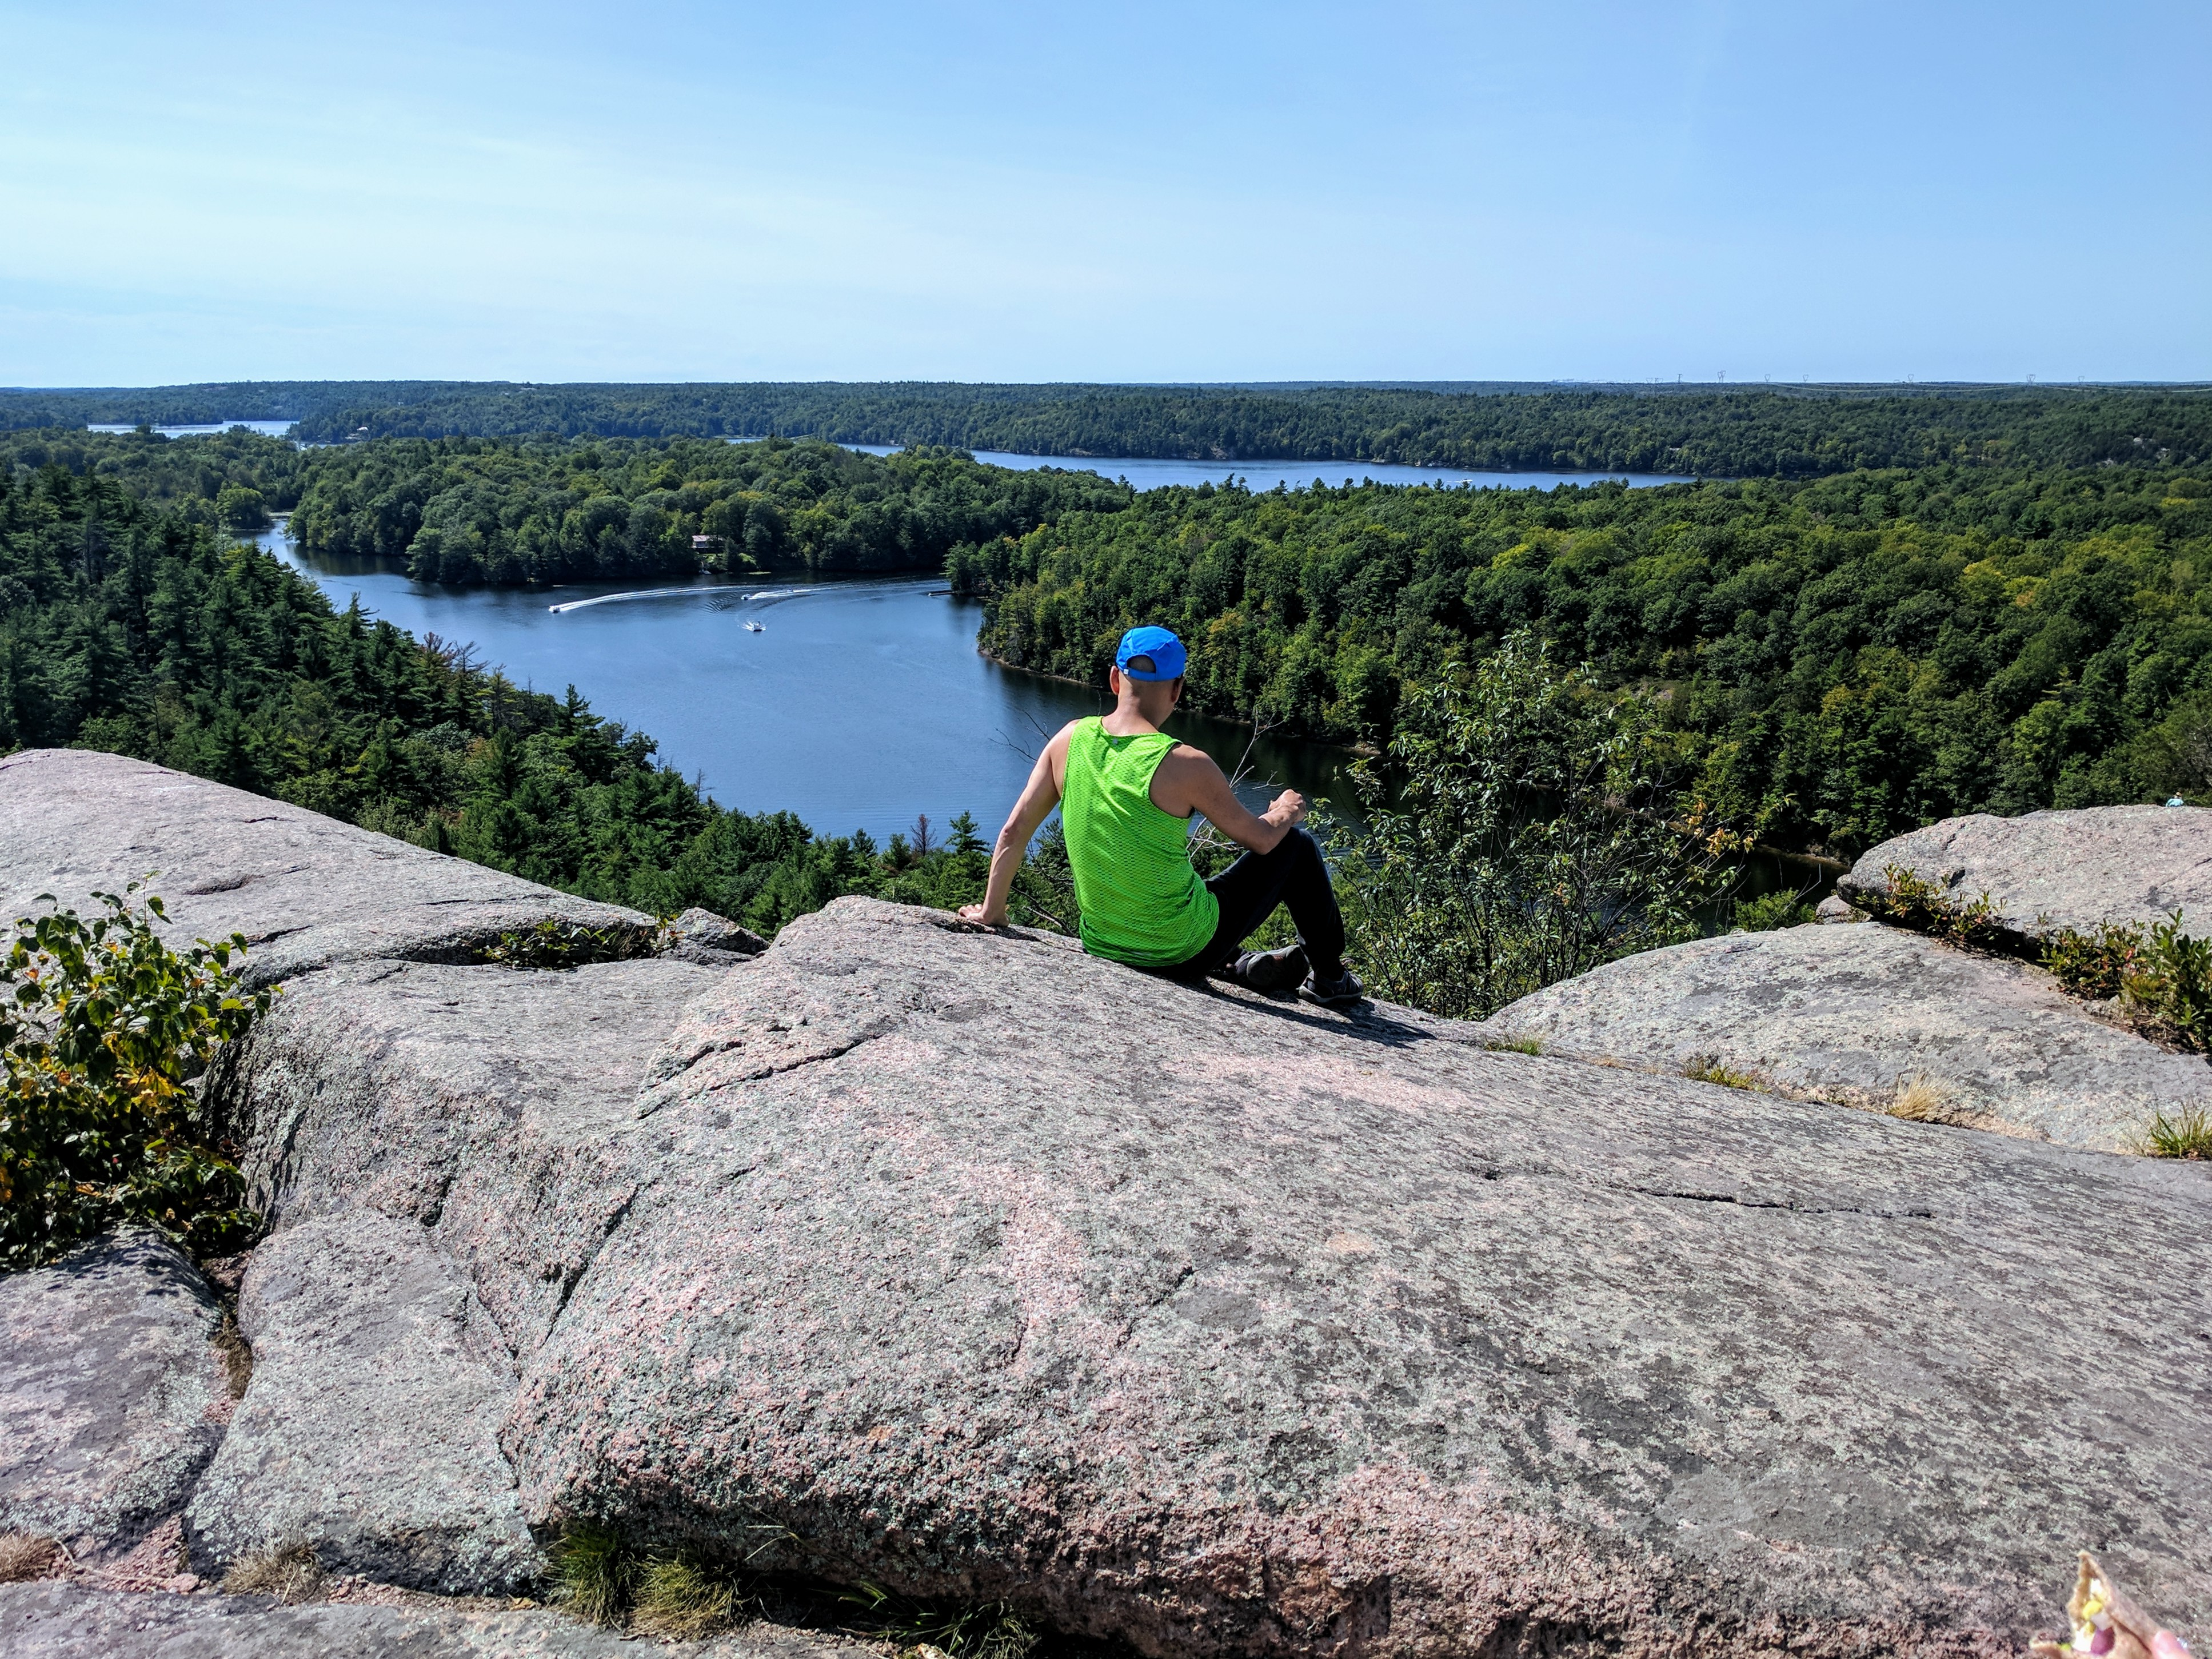 From the top of Rock Dunder